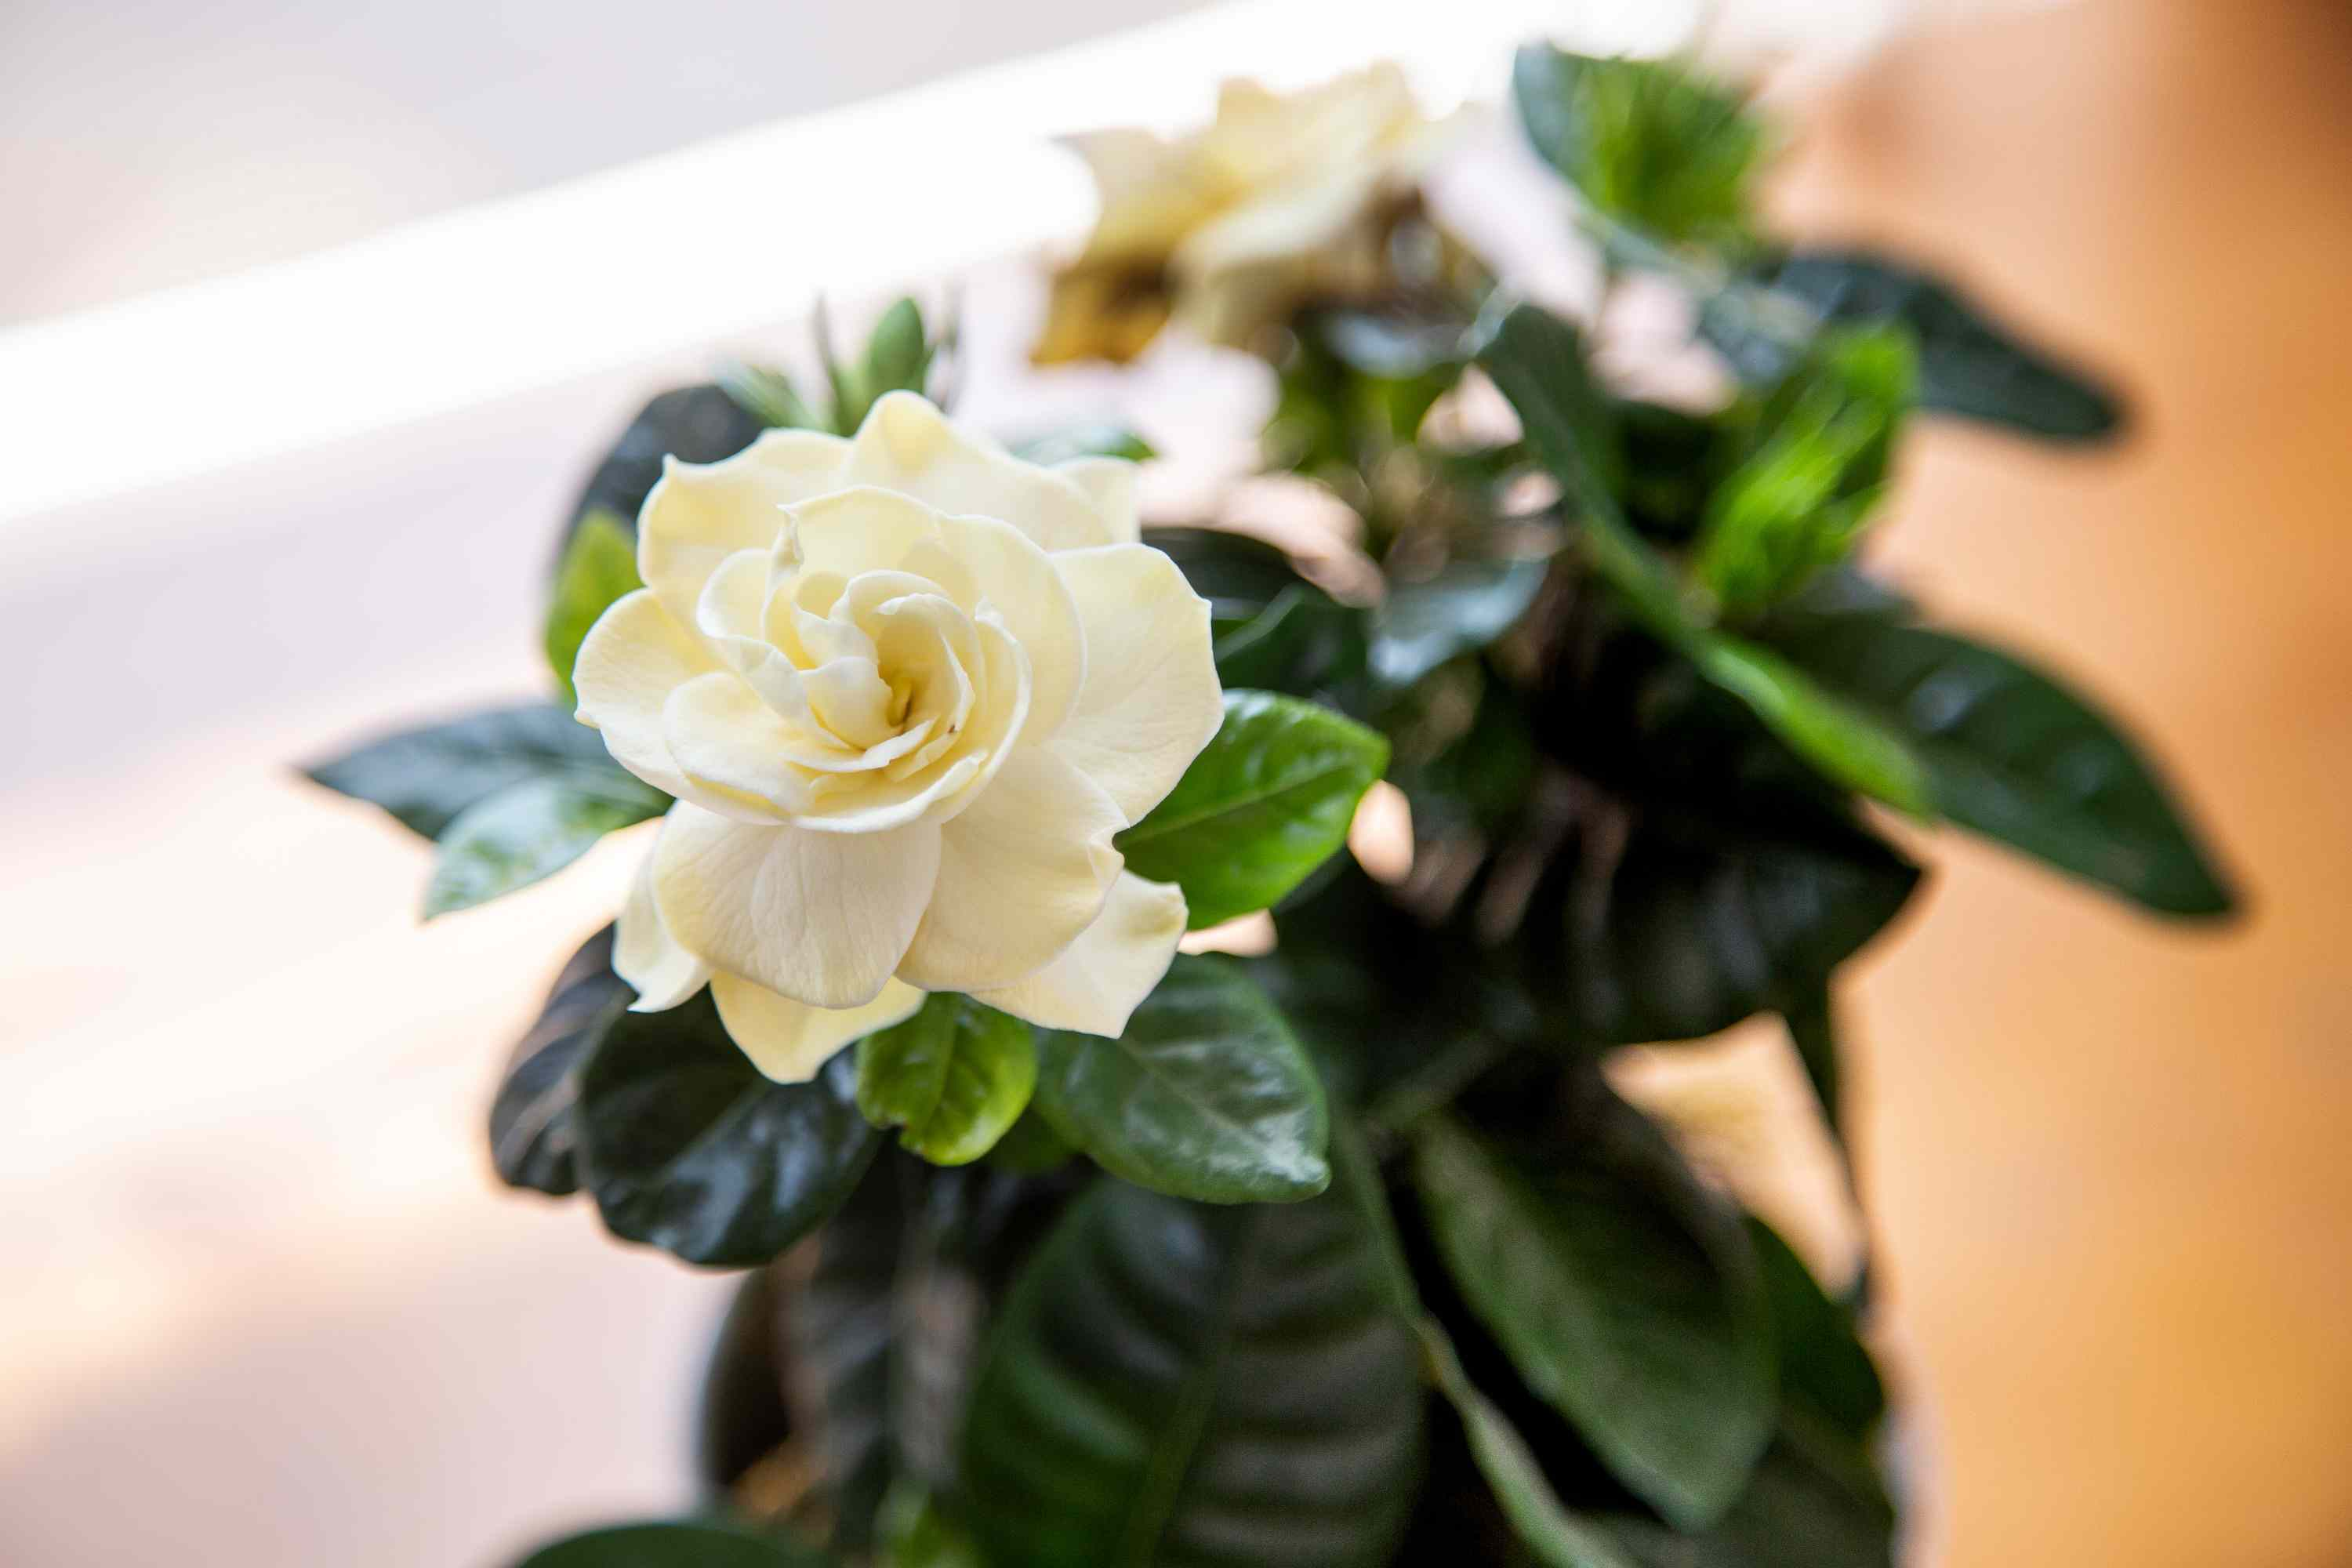 Gardenia plant with cream white flowers surrounded by glossy green leaves